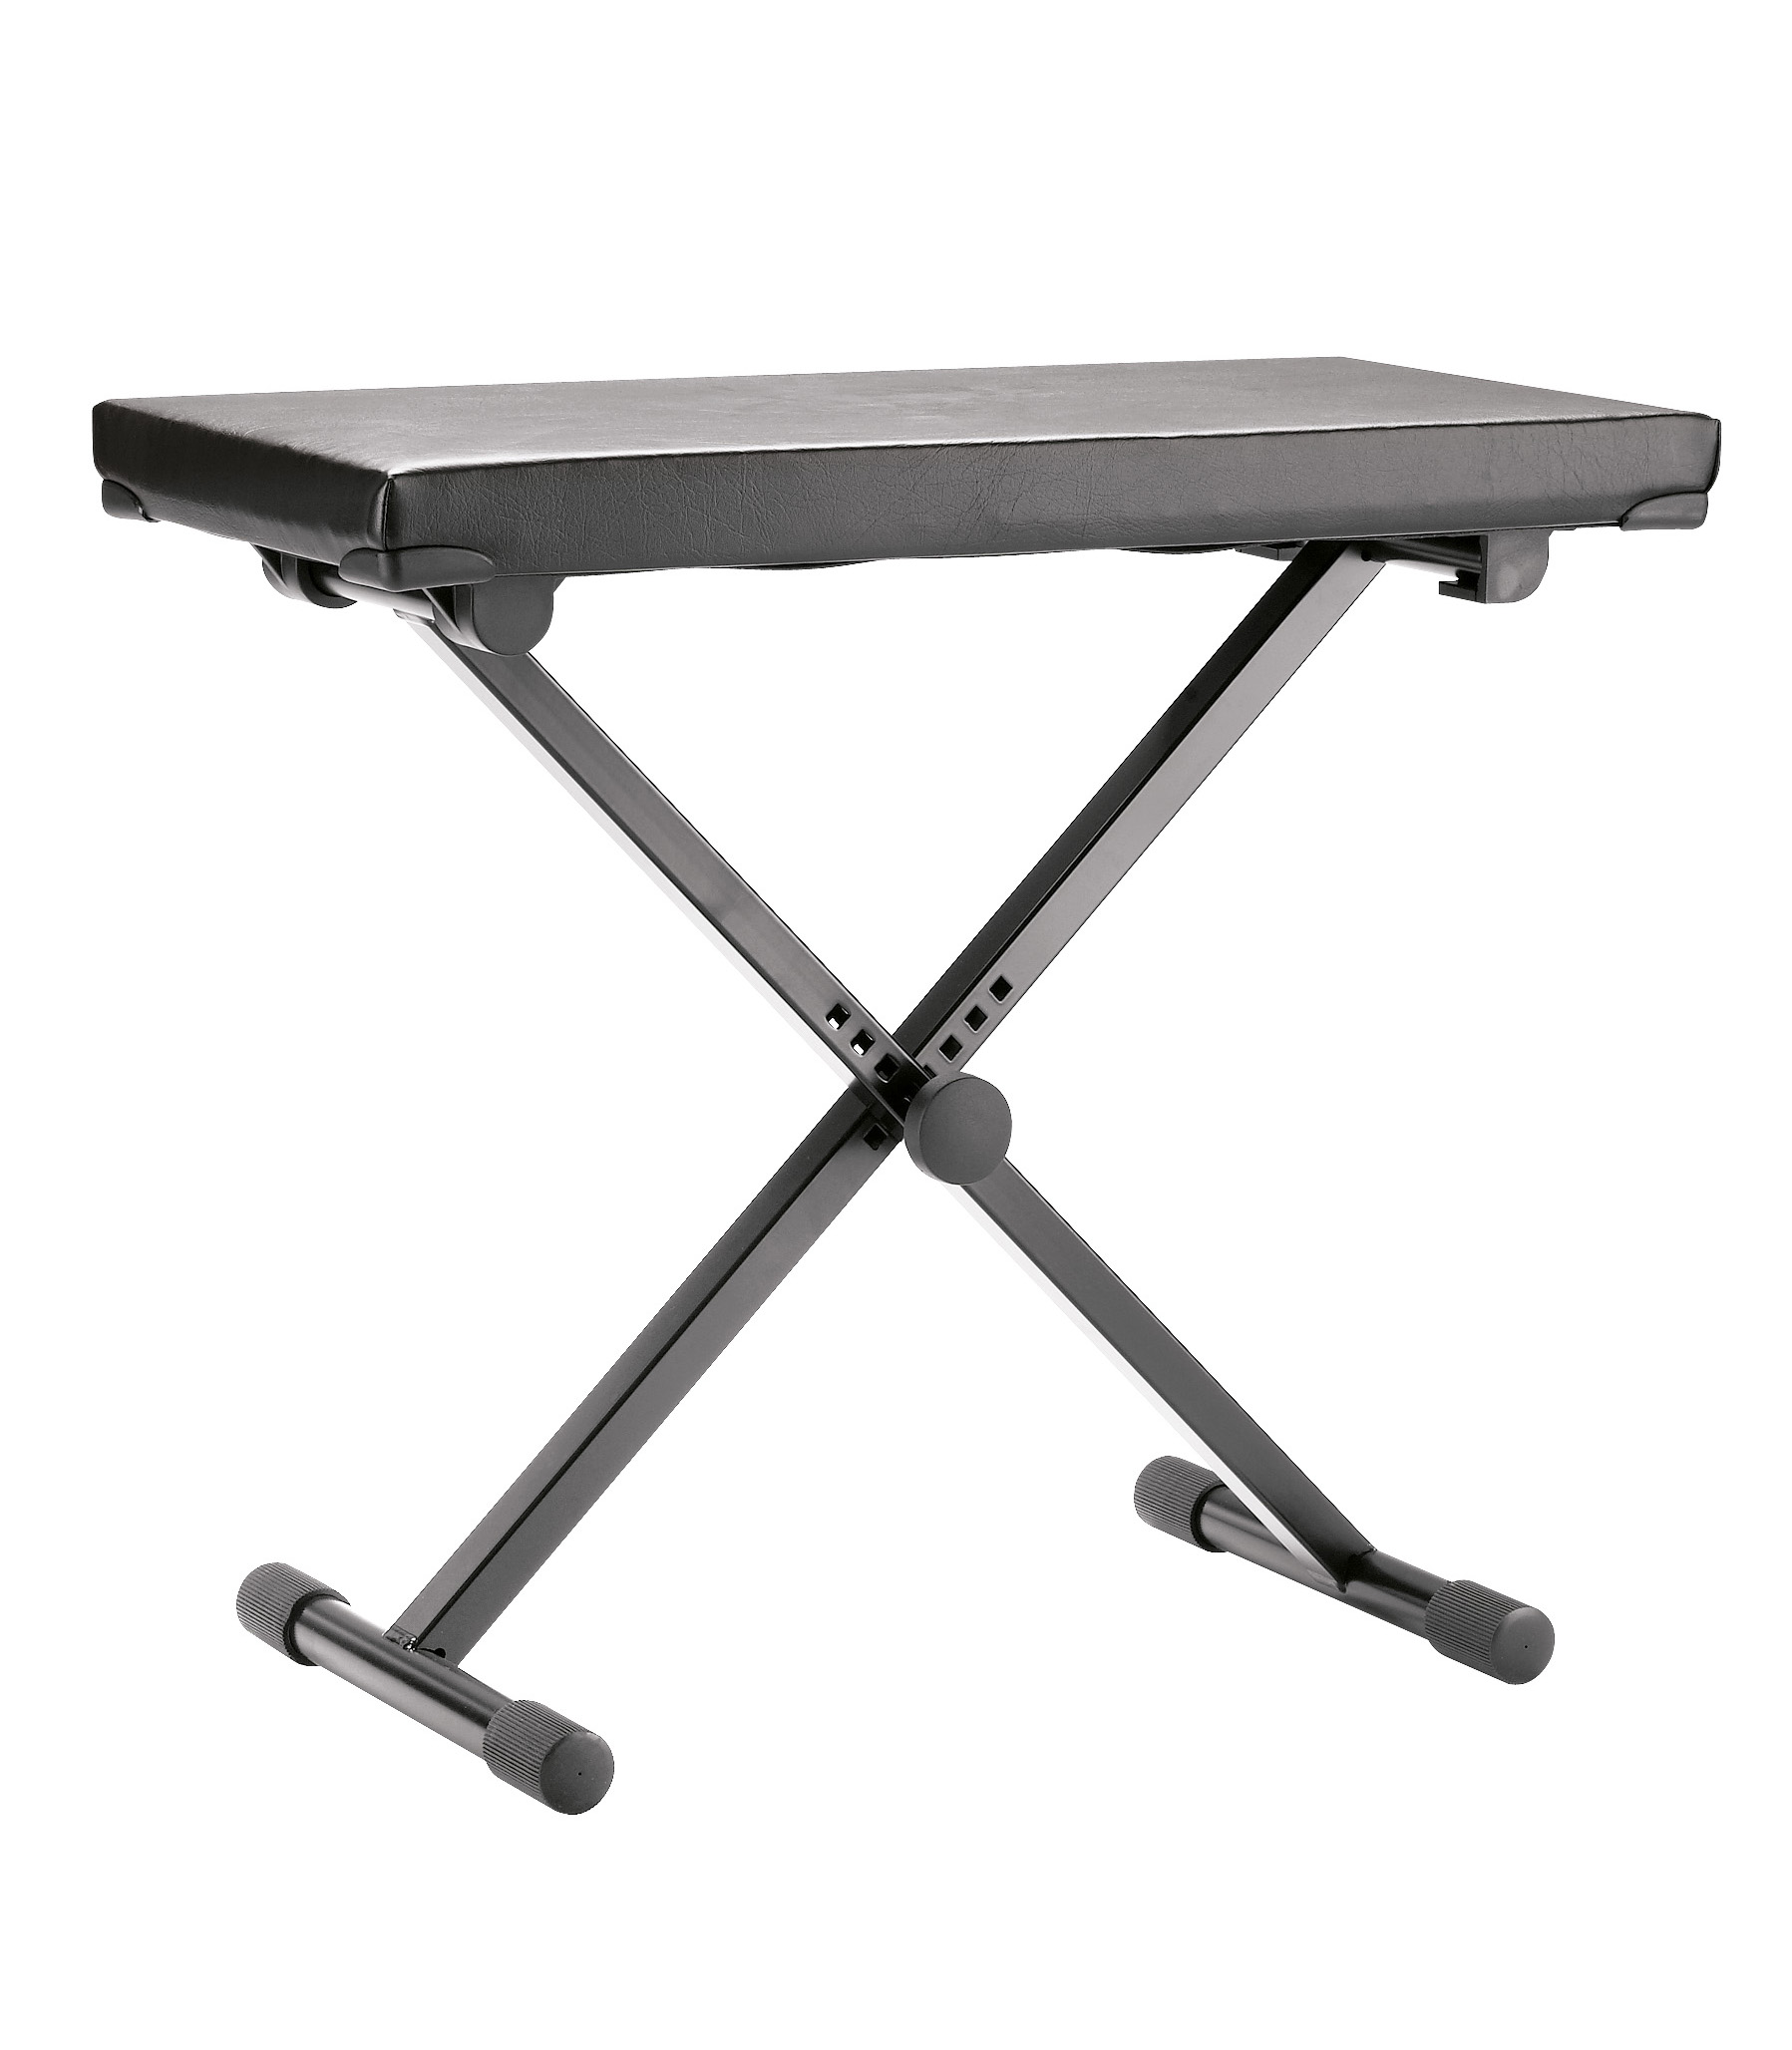 K&M - 14075 000 55 wide keyboard bench - Melody House Musical Instruments